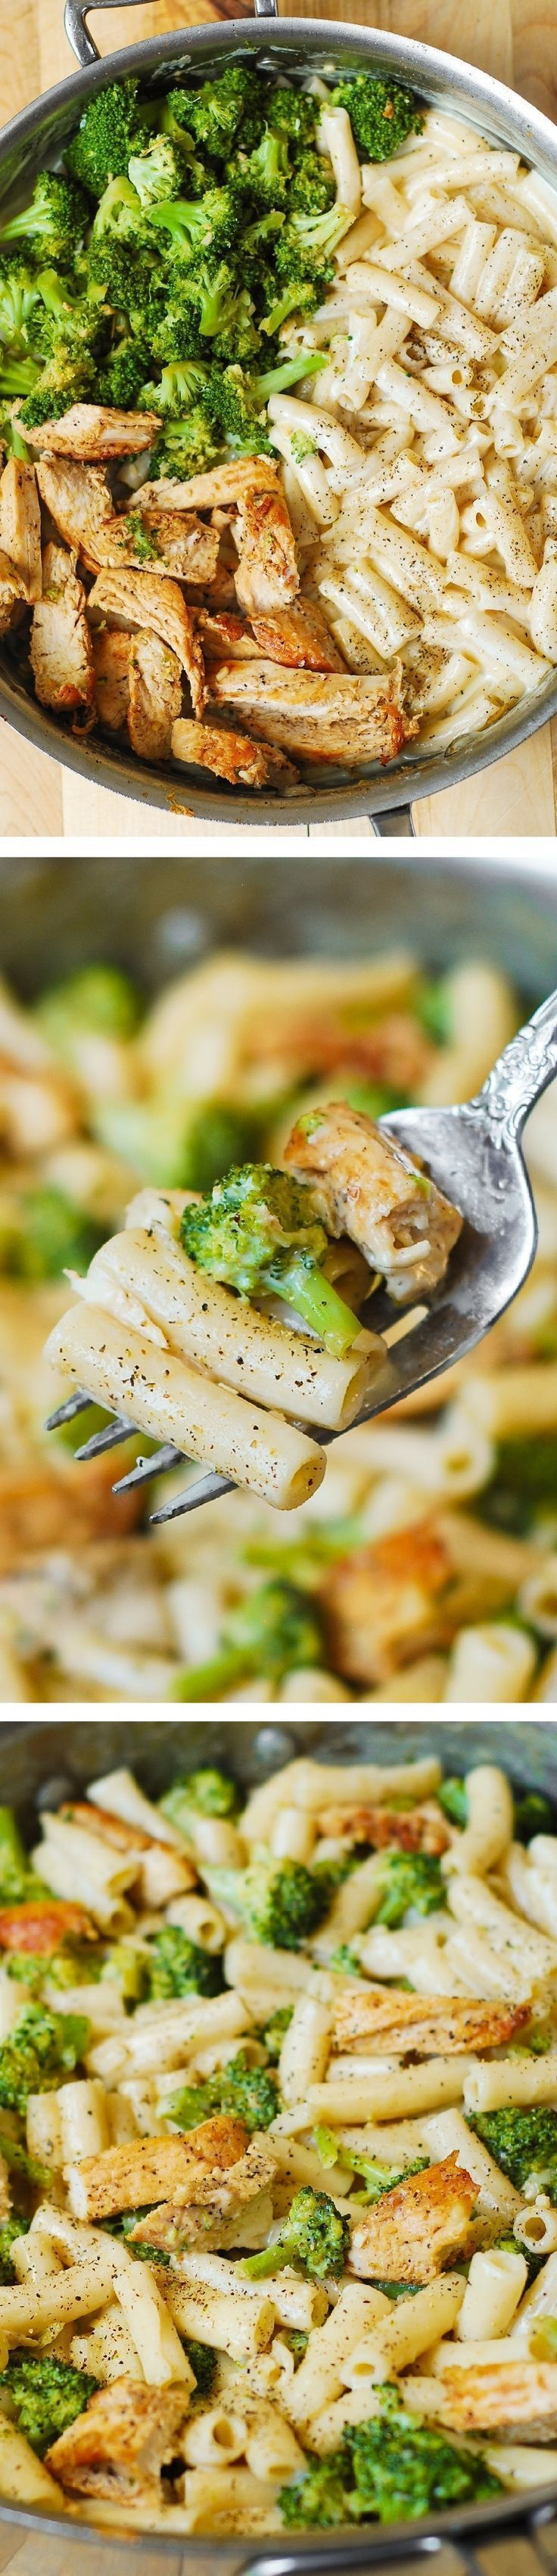 Delicious, Creamy Chicken Breast, Broccoli, Garlic In A -6668